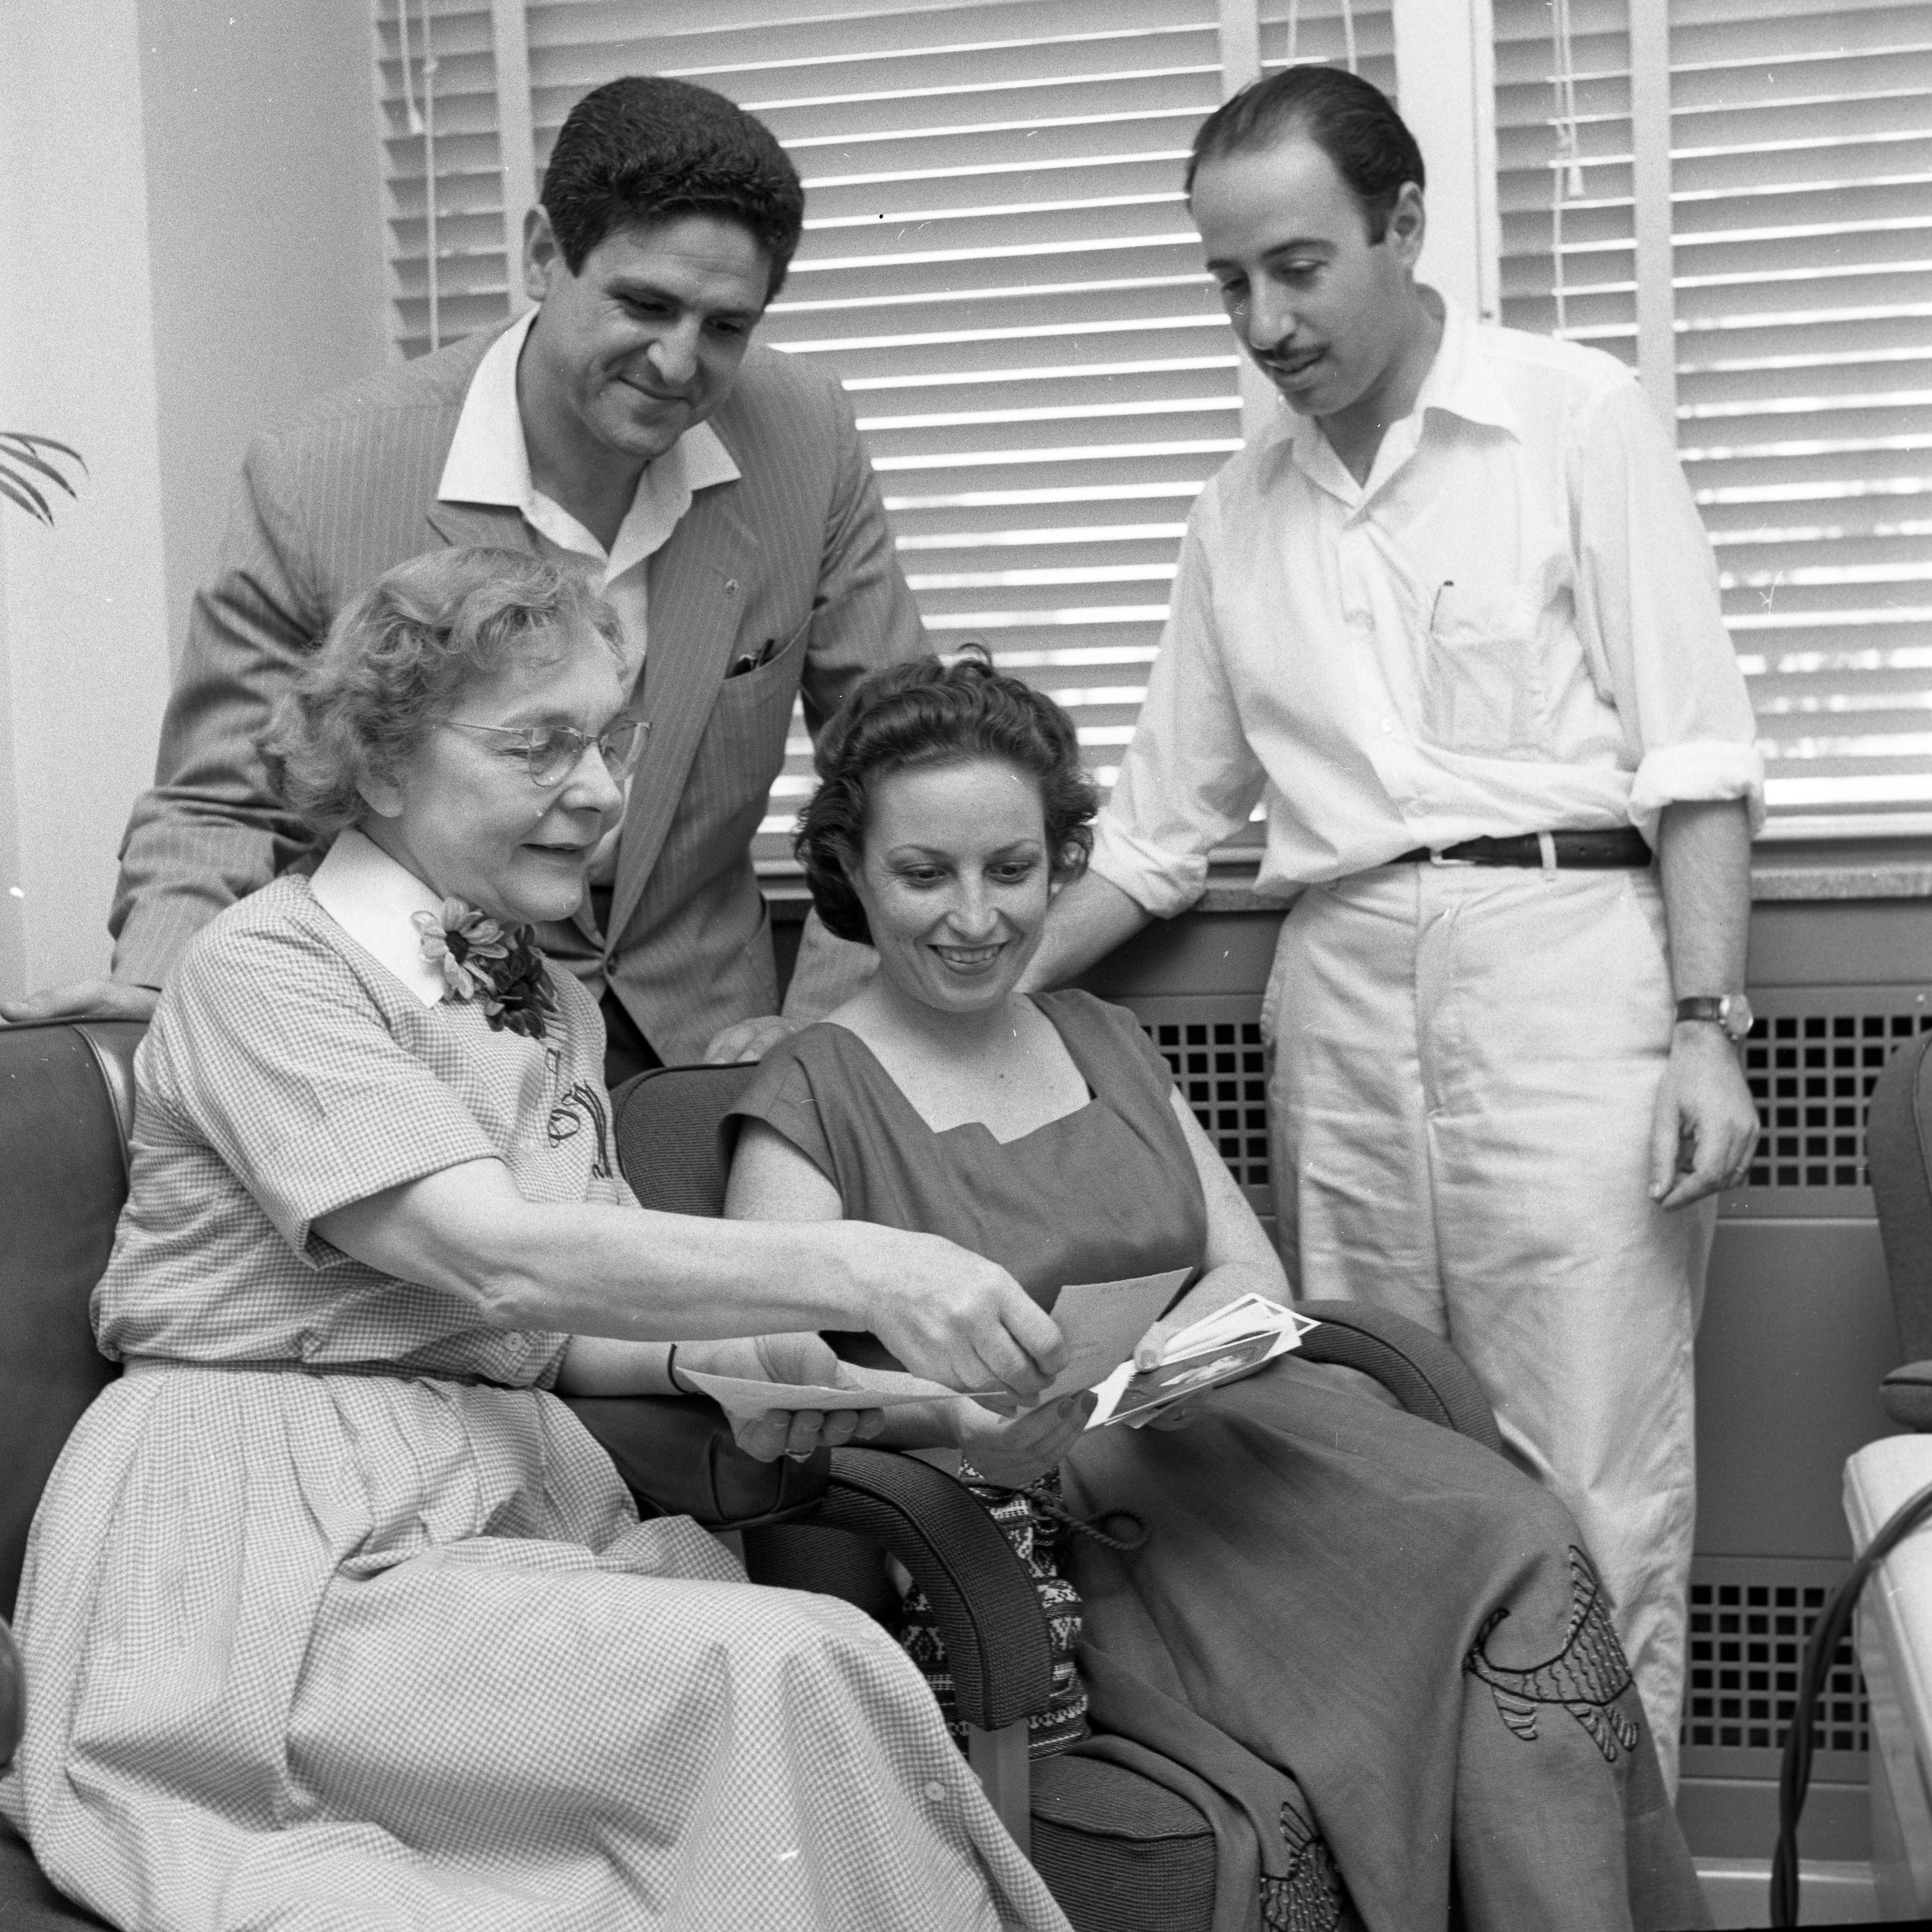 Washtenaw County Clerk Obtains Visa Extensions For Family Following Heart Surgery at University Hospital, August 1958 image